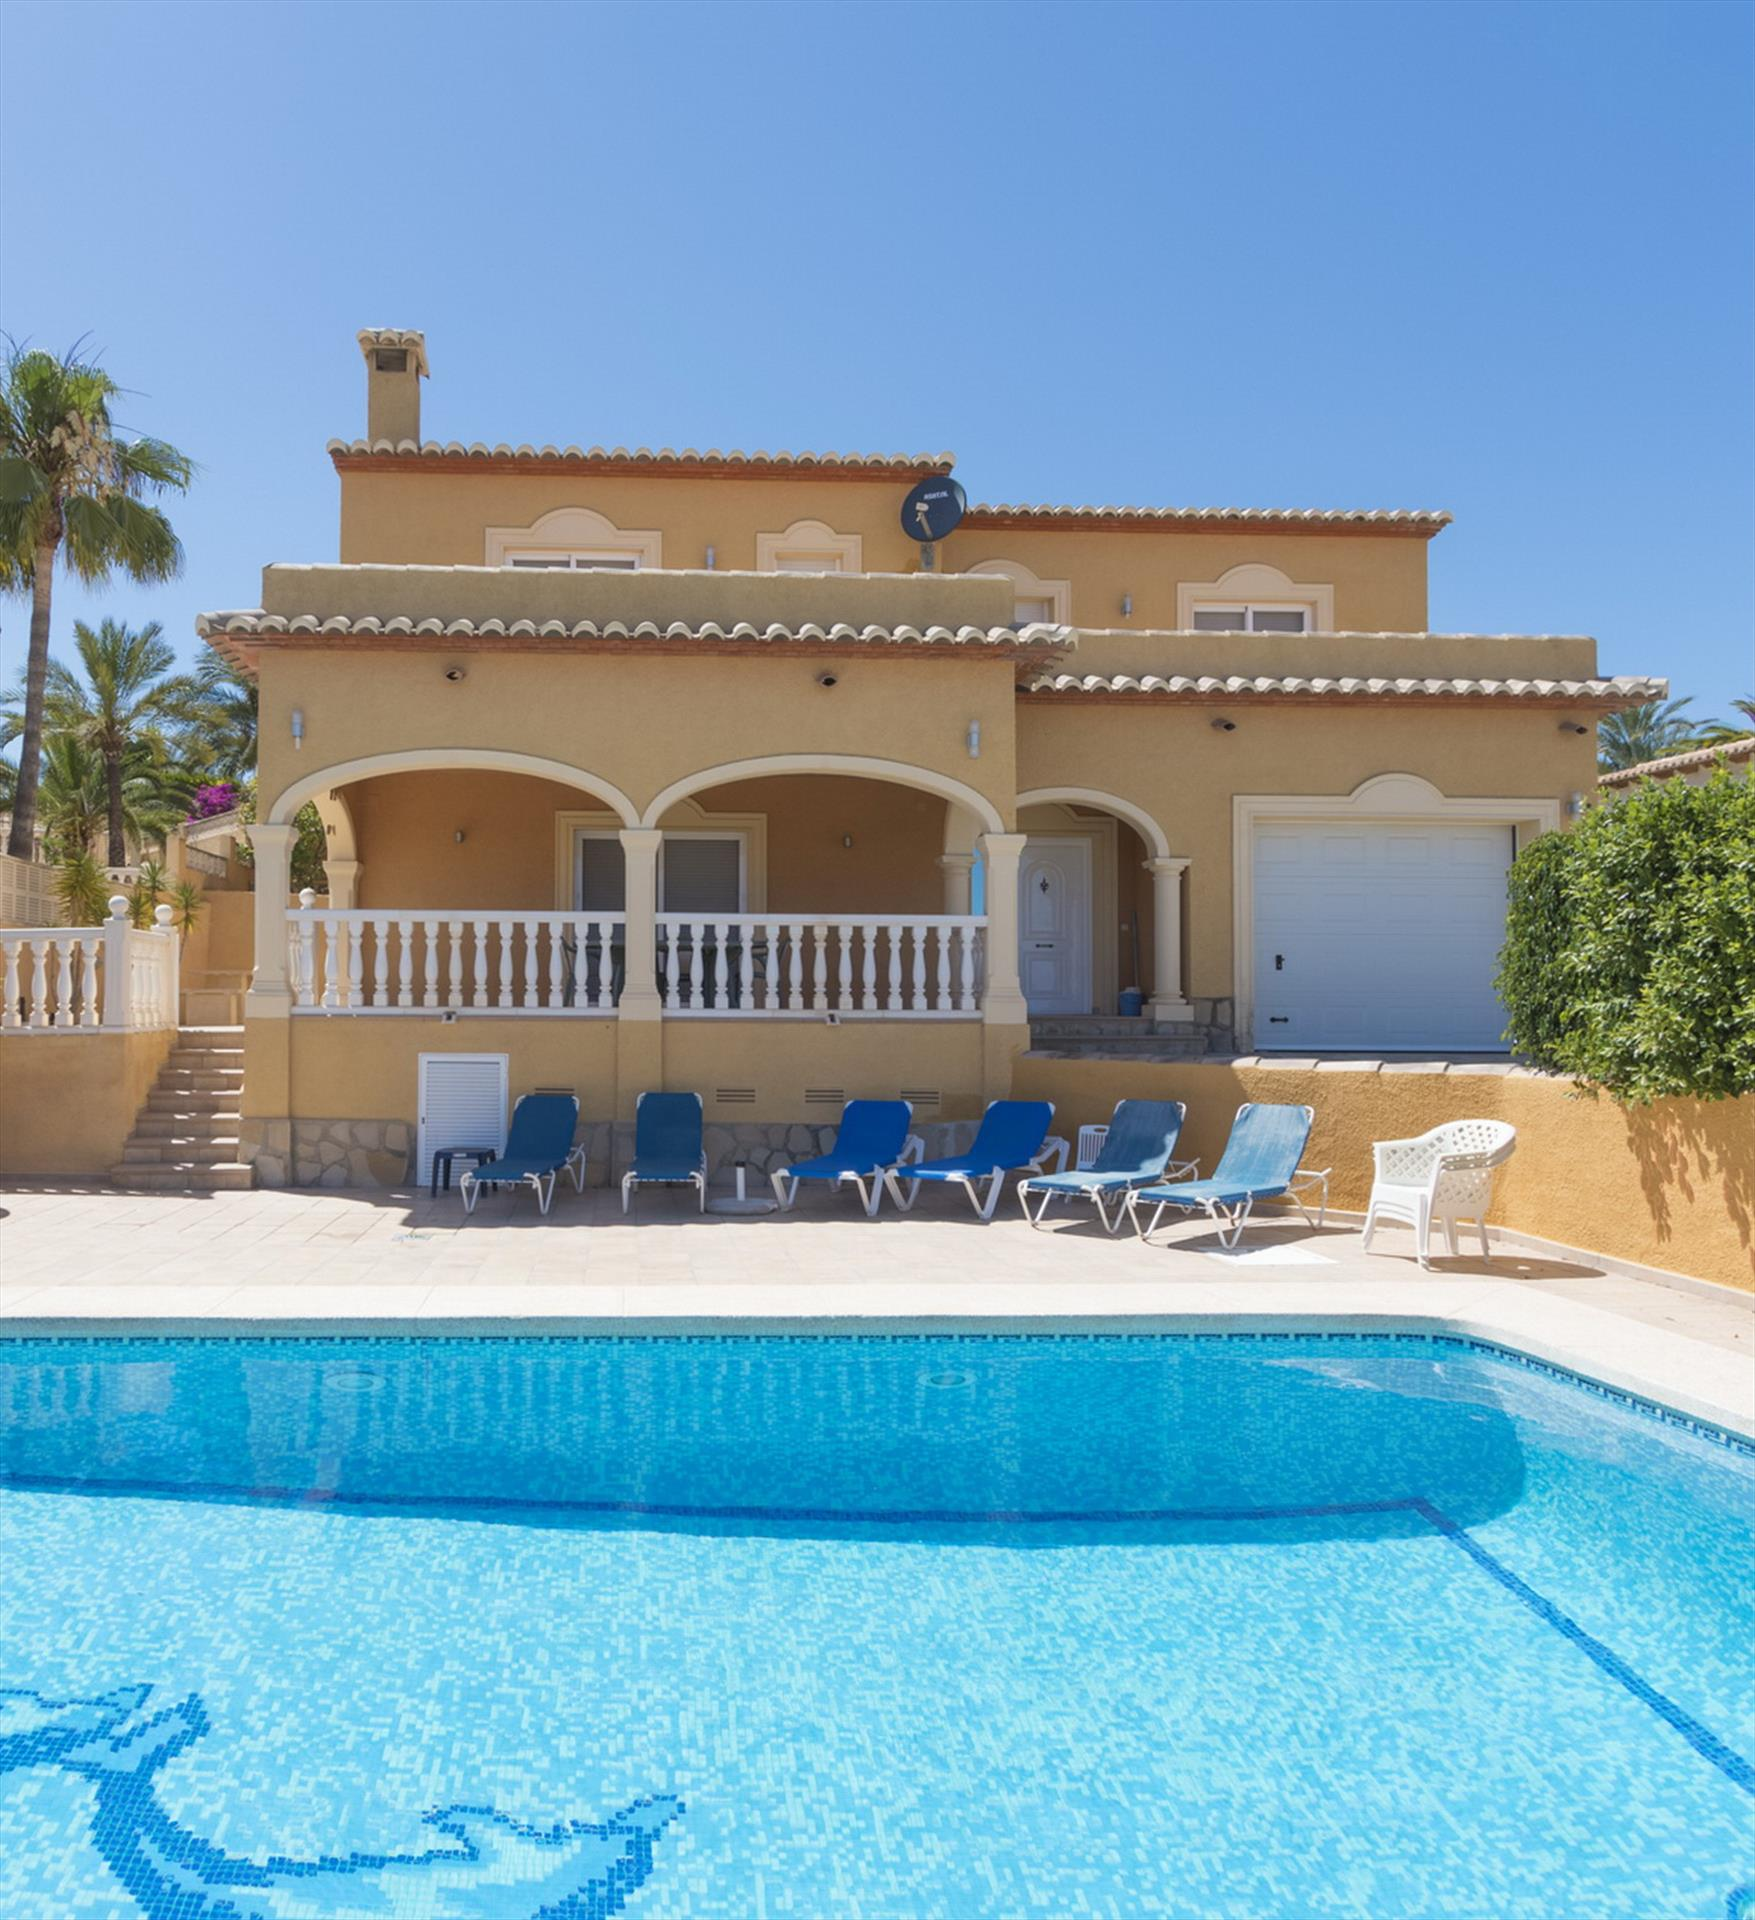 Chris, Villa with private pool (with security fence for children) in Calpe, on the Costa Blanca, Spain for 6 persons. The villa.....